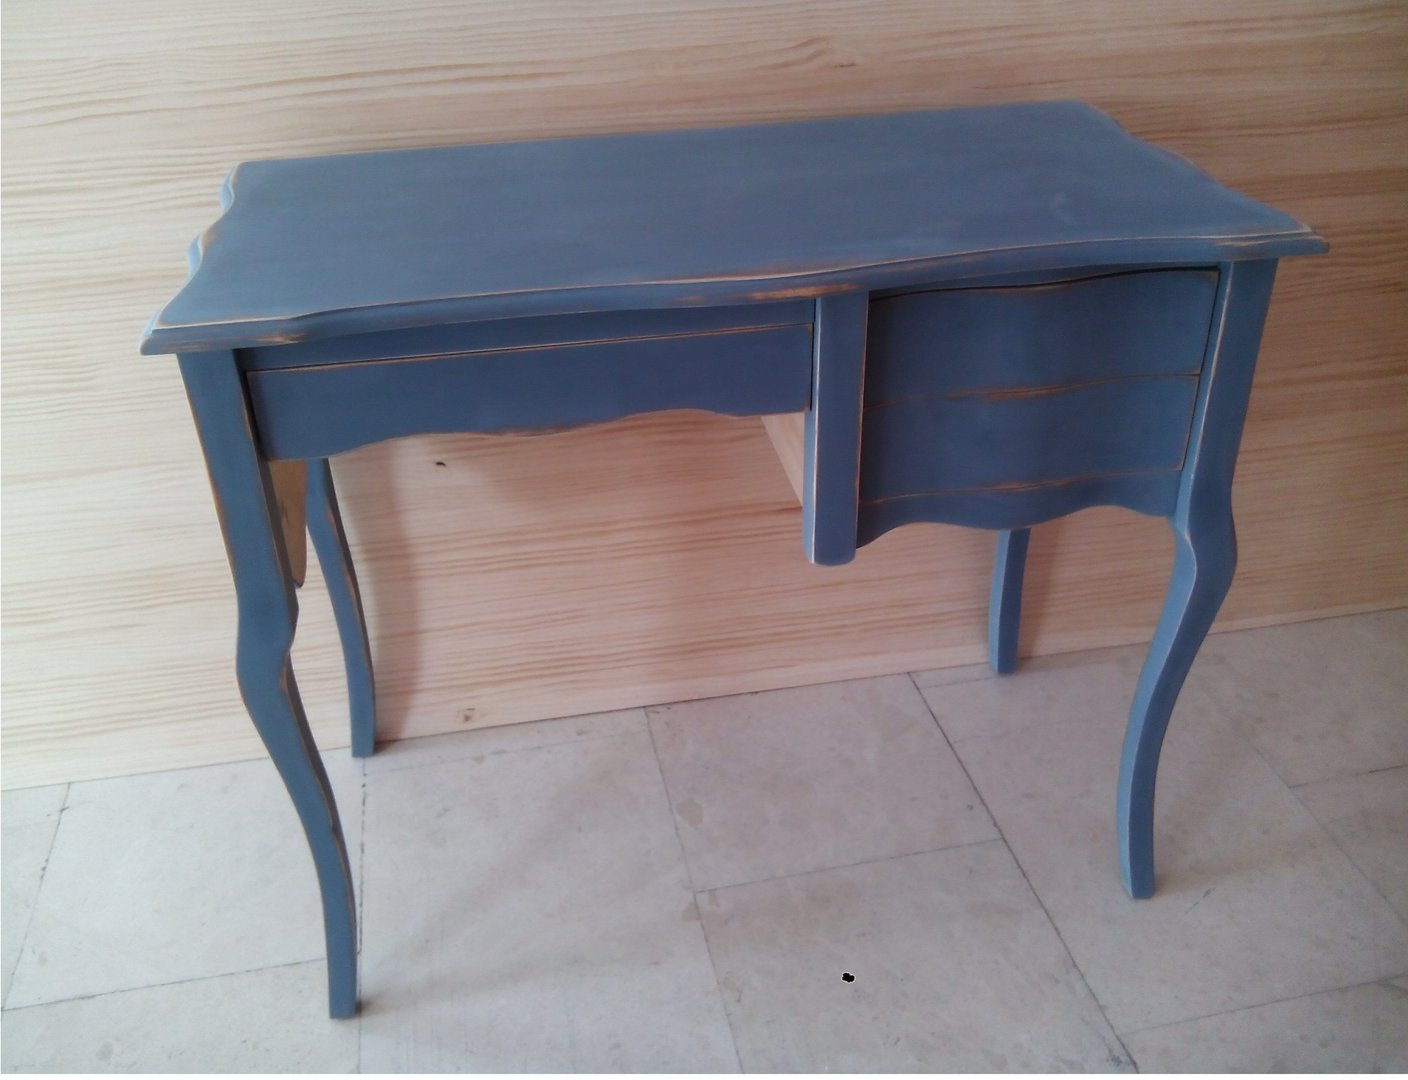 Mueble Marroqui Decapado Azul Marroqui Hiperhogar Es